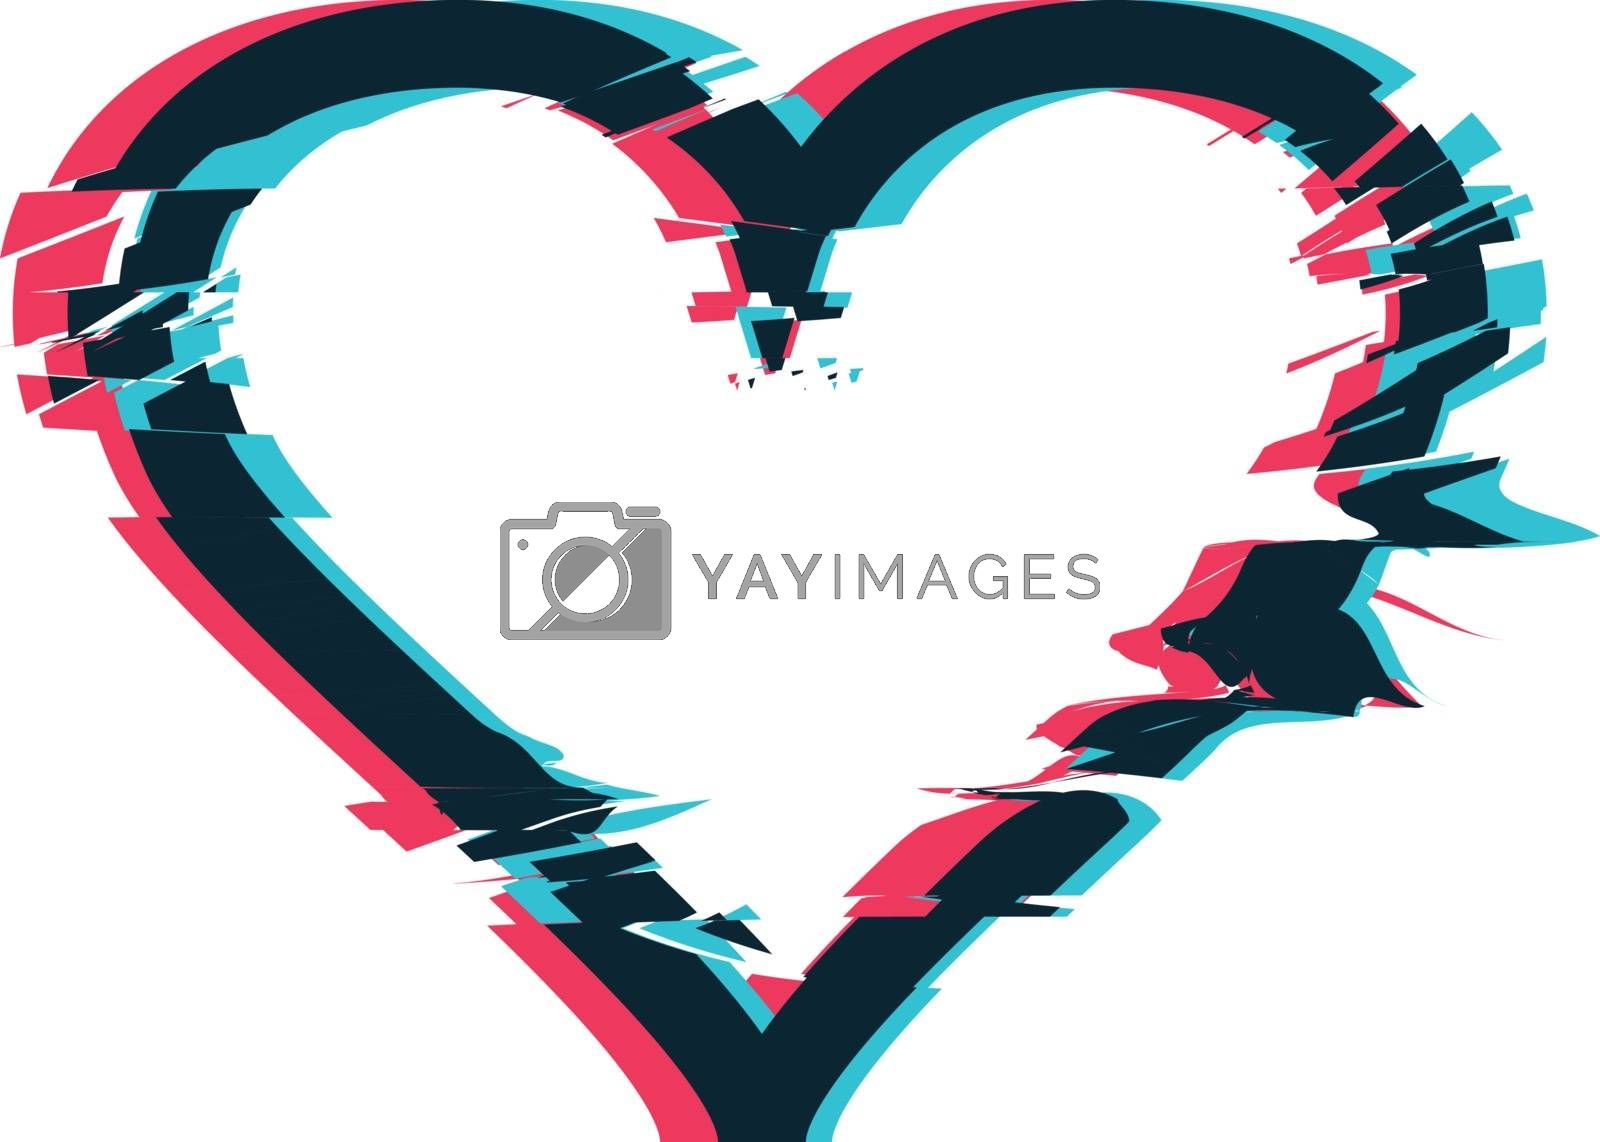 Royalty free image of Glitch distortion frame. Vector heart illustration by sermax55